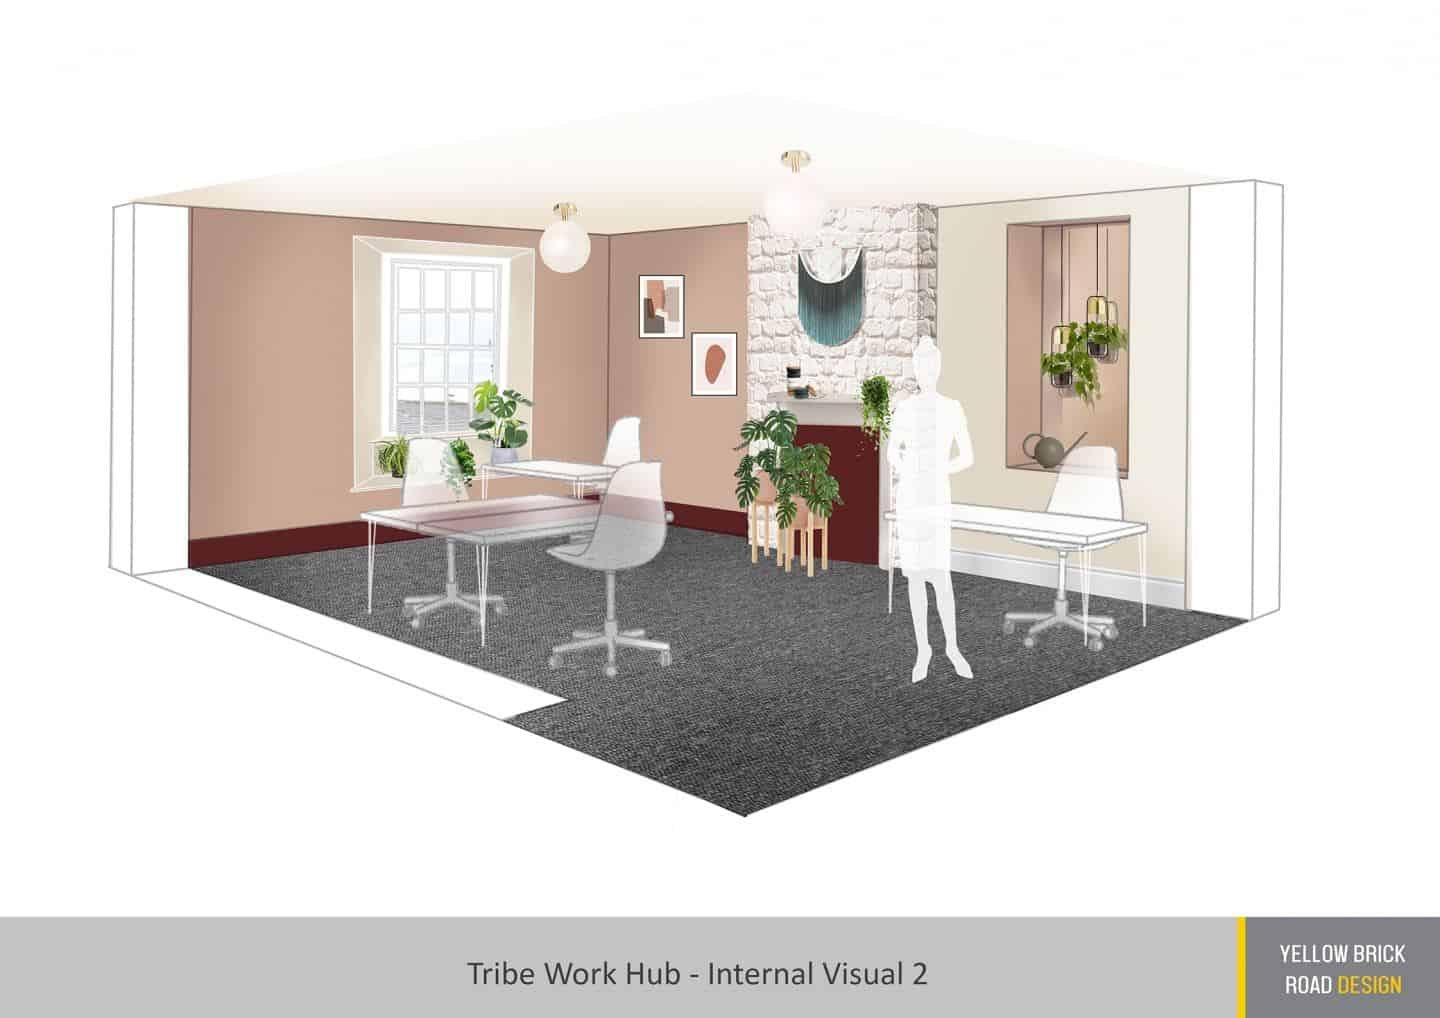 The Tribe is a coworking space for female entrepreneurs in Totnes, Devon